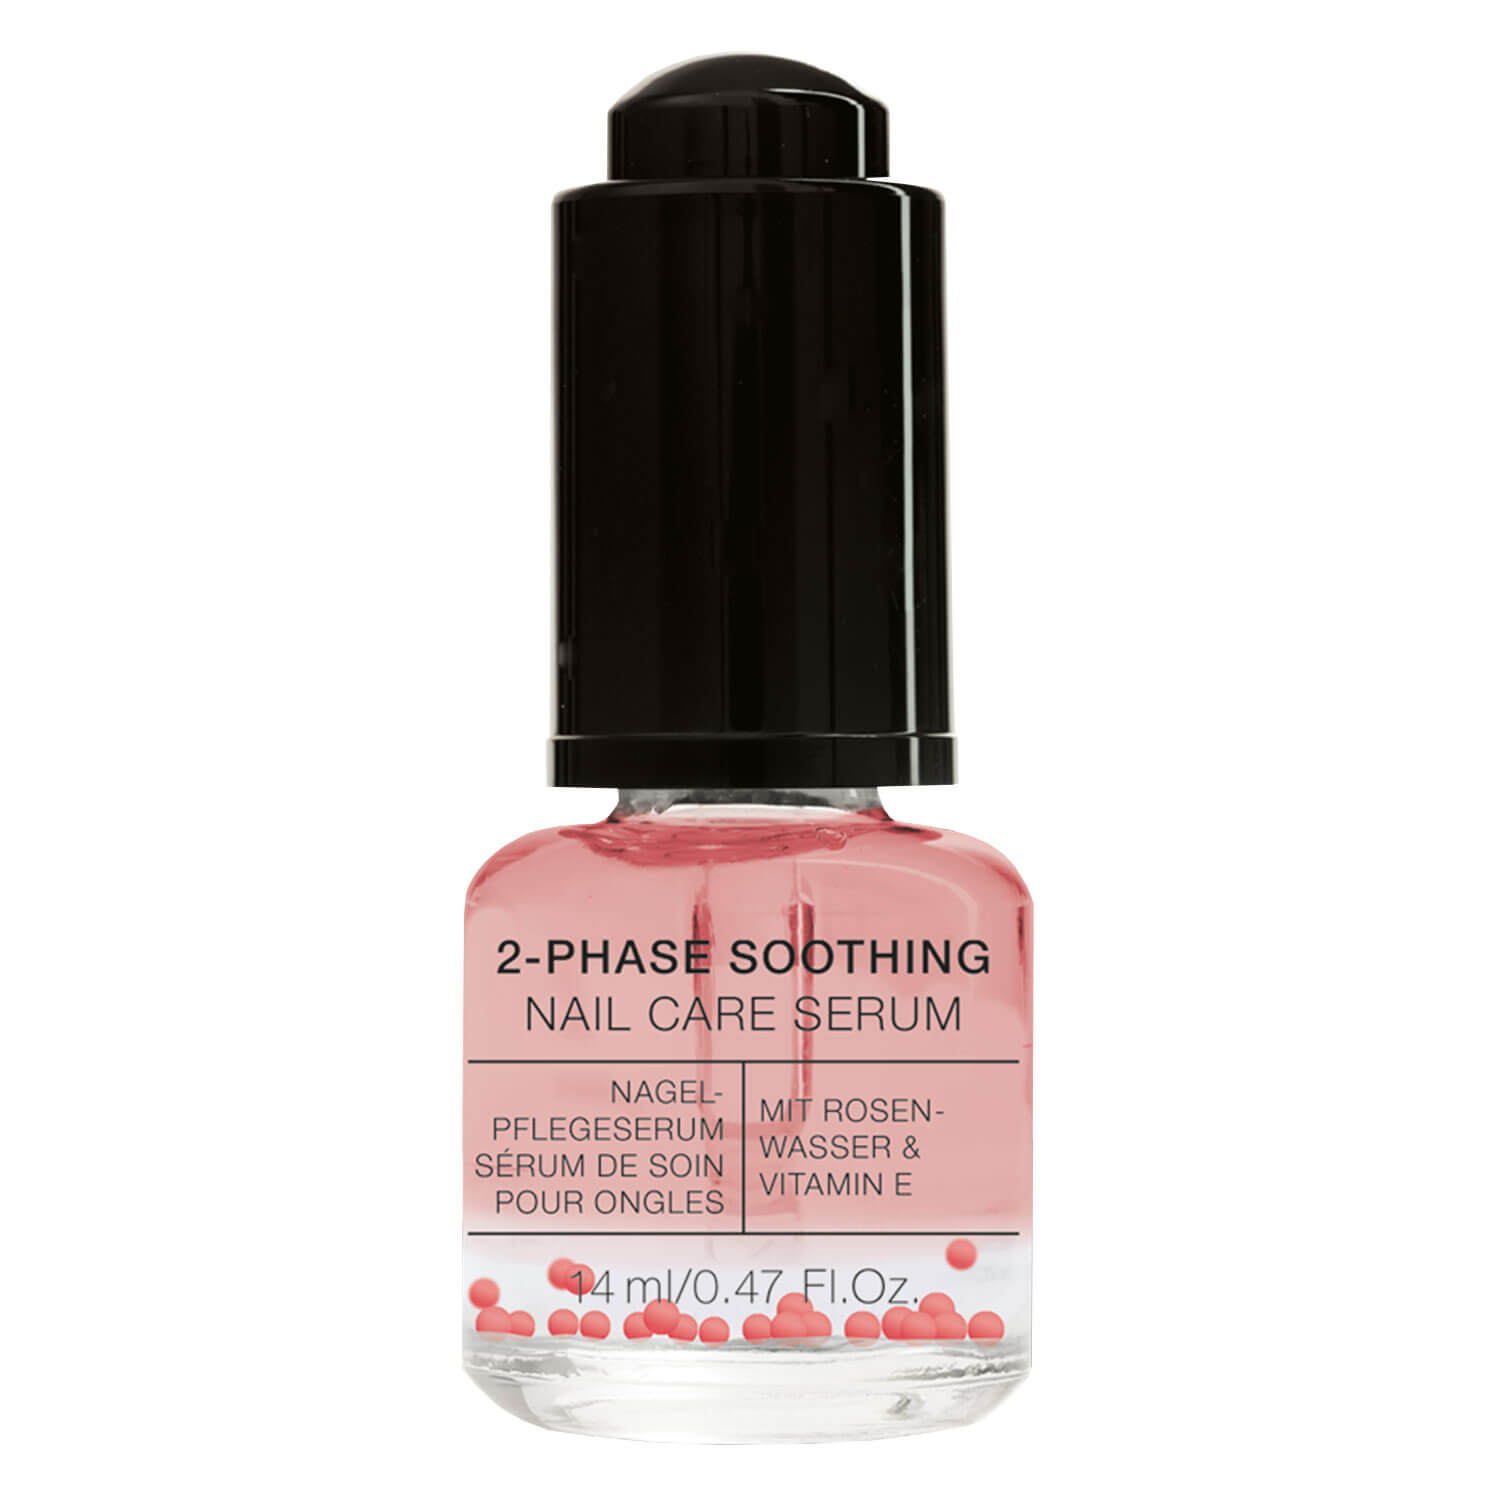 Alessandro Spa - 2-Phase Soothing Nail Care Serum